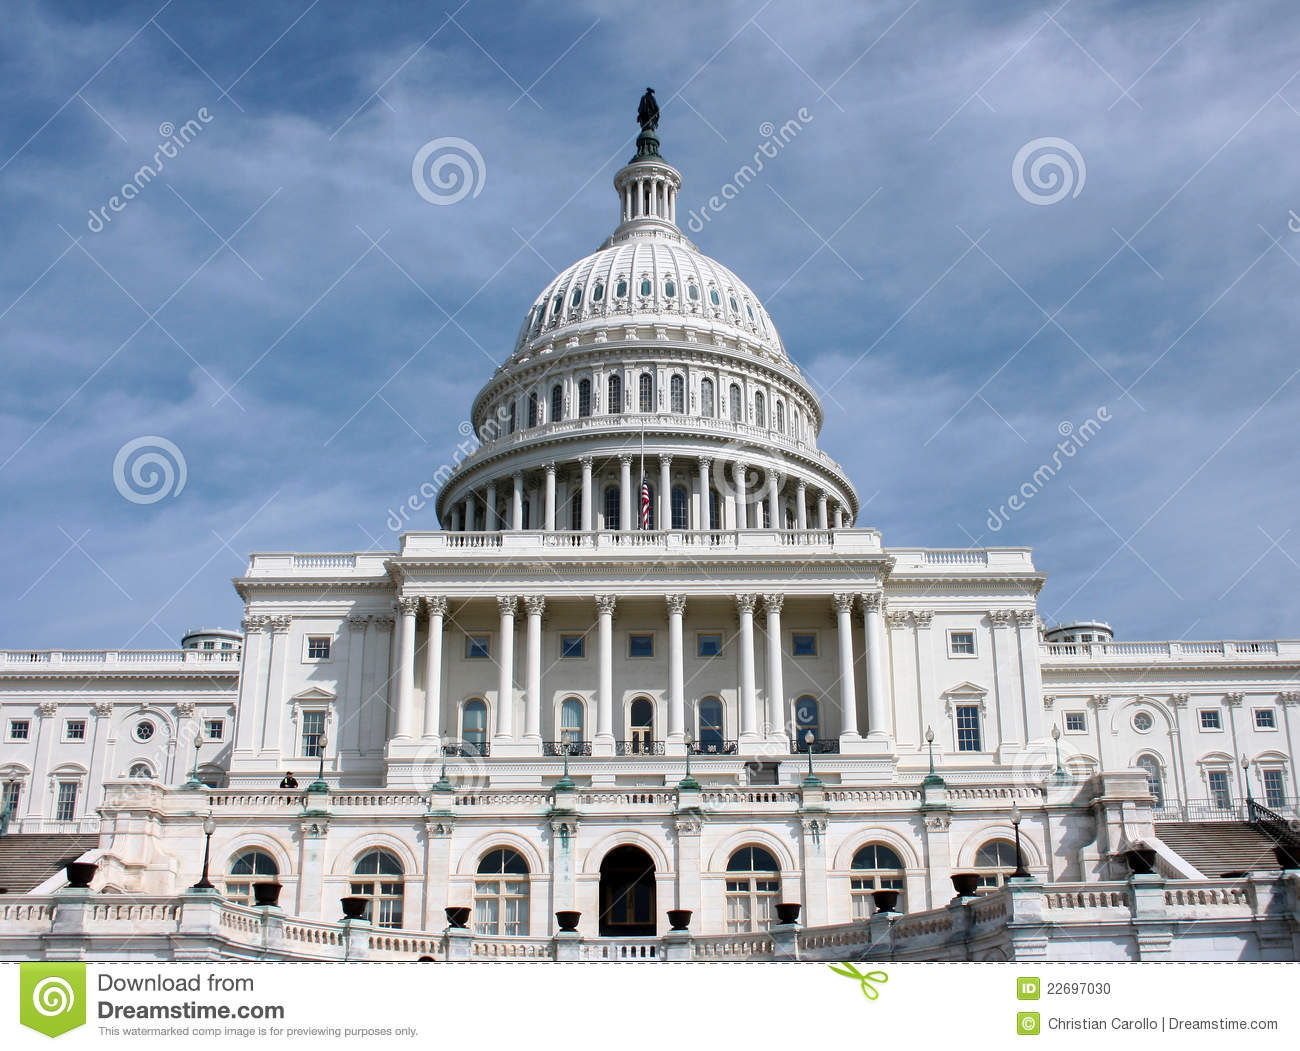 http://thumbs.dreamstime.com/z/front-view-us-capitol-building-22697030.jpg